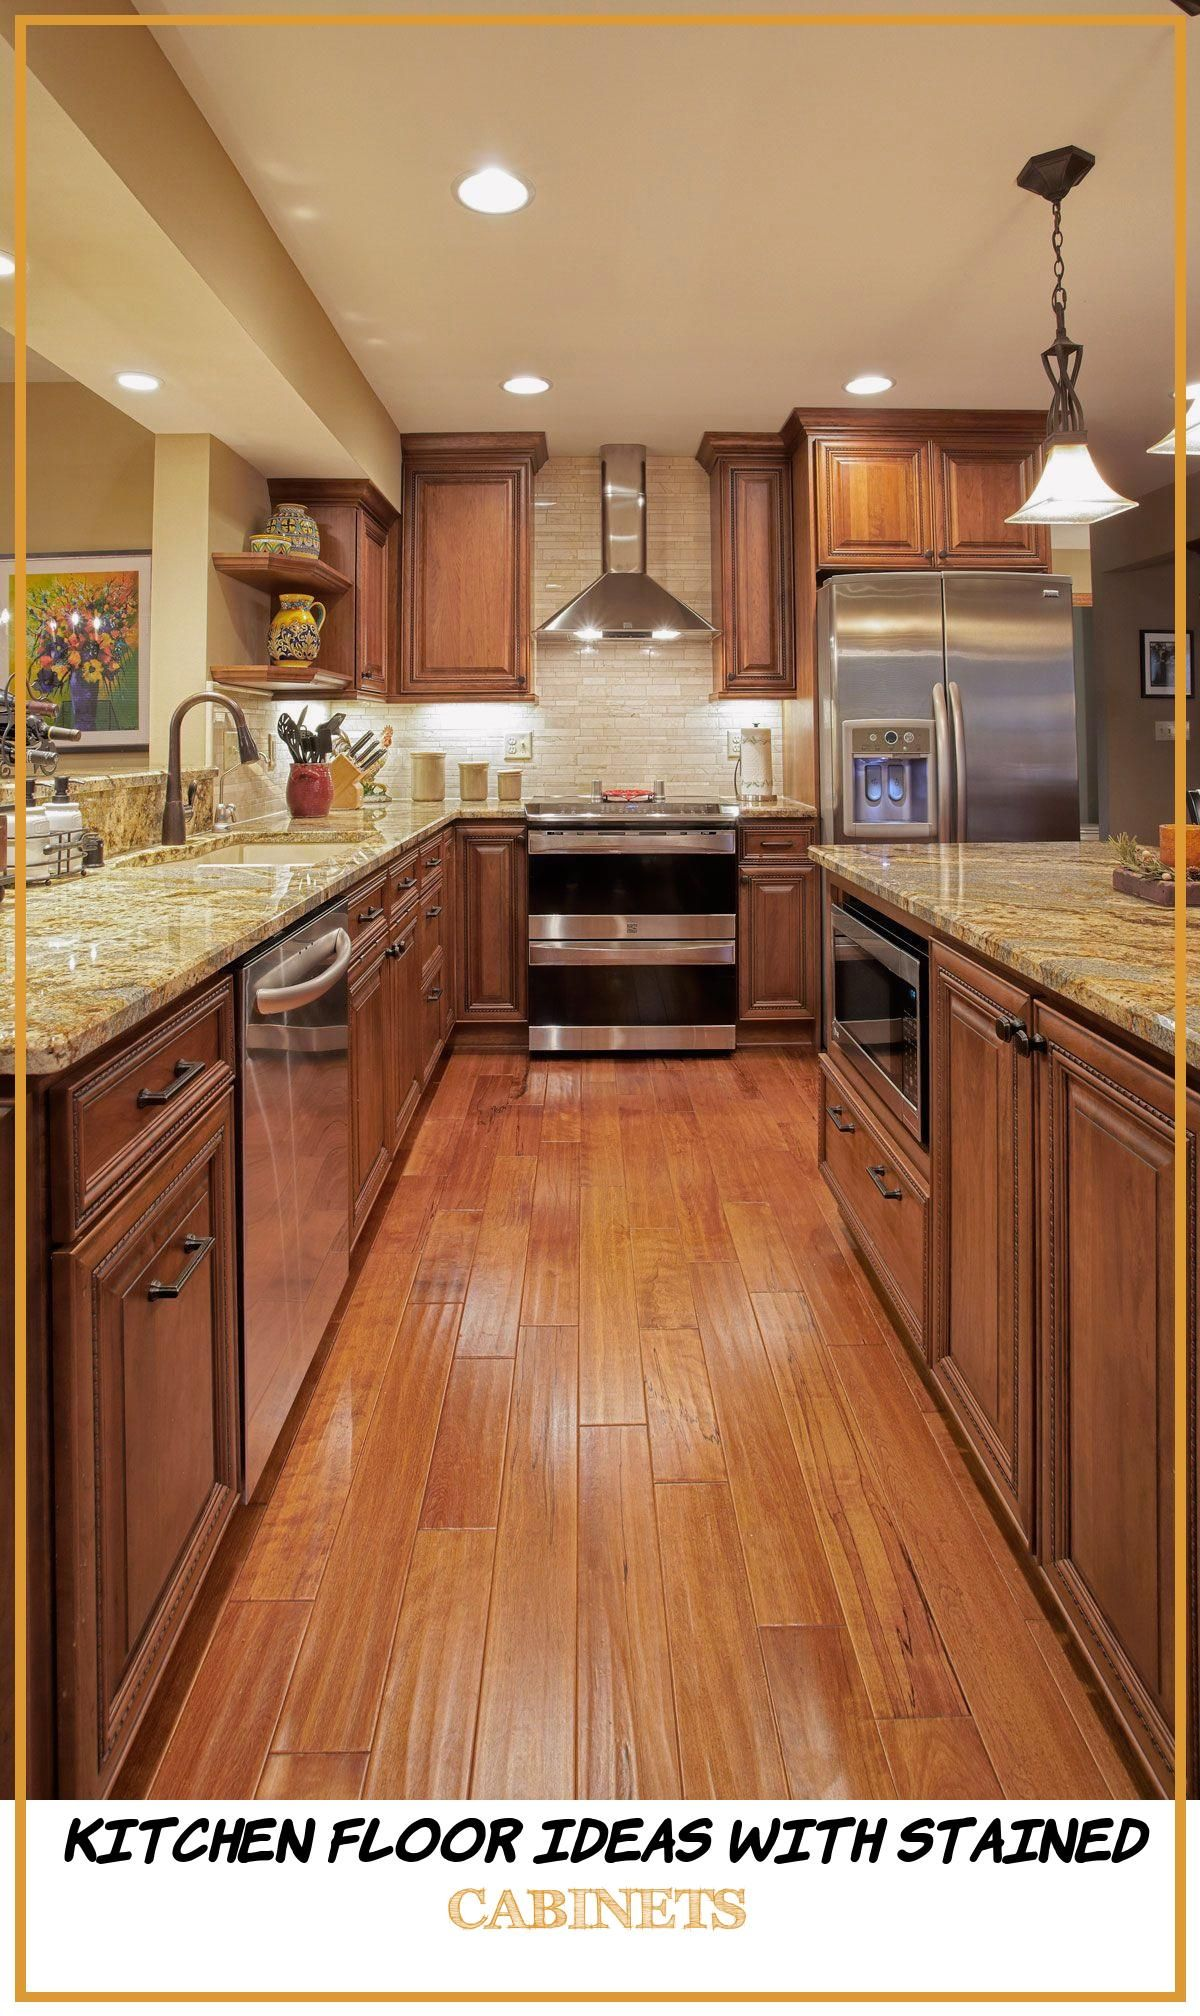 12 Kitchen Floor Ideas with Stained Cabinets in 2020 ...